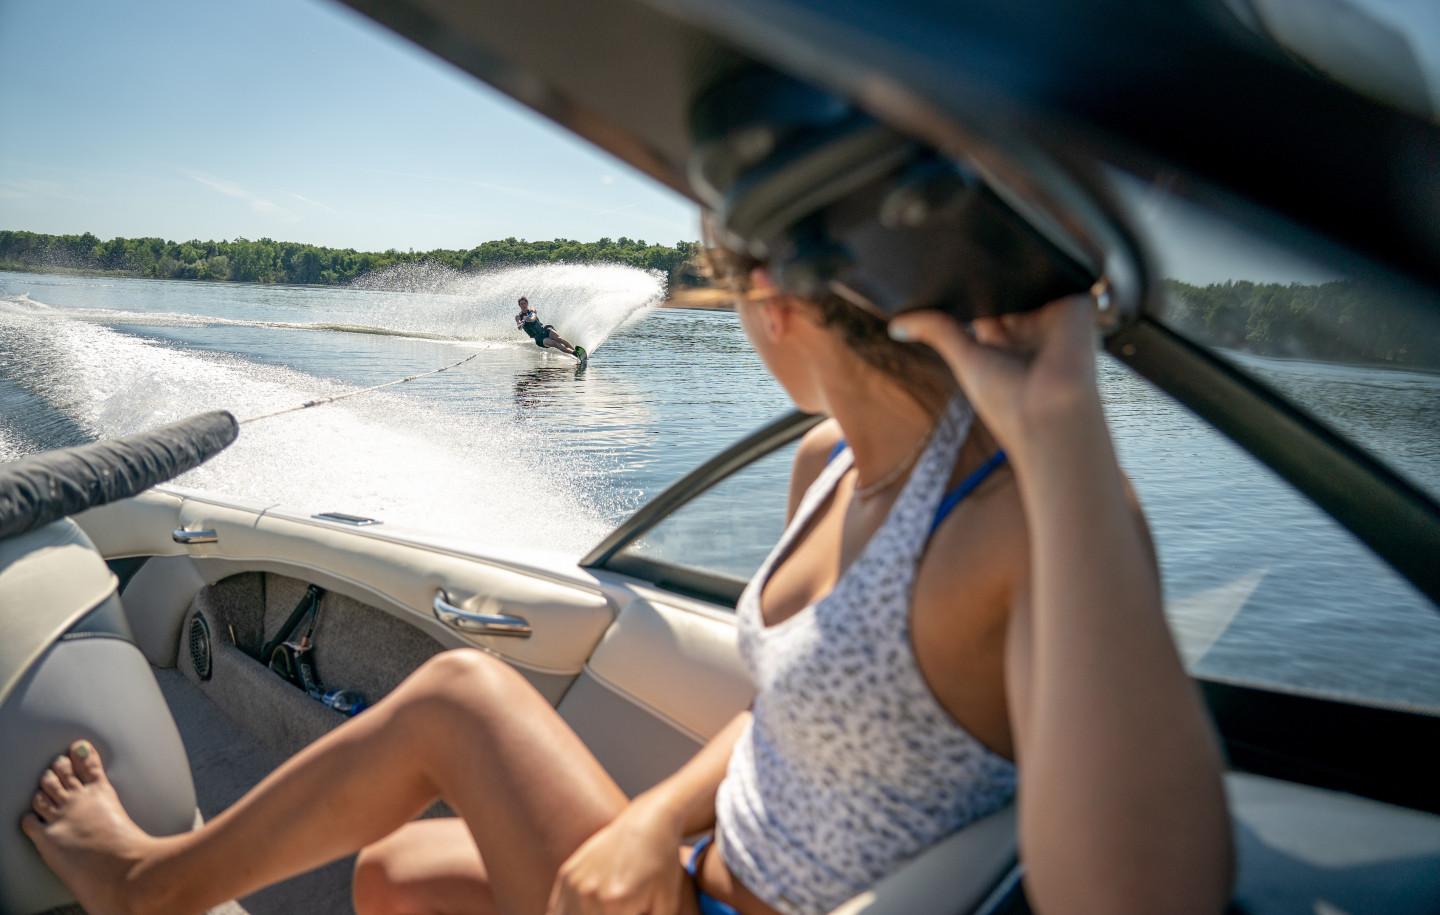 A boat passenger looks back at a person water skiing behind the boat.